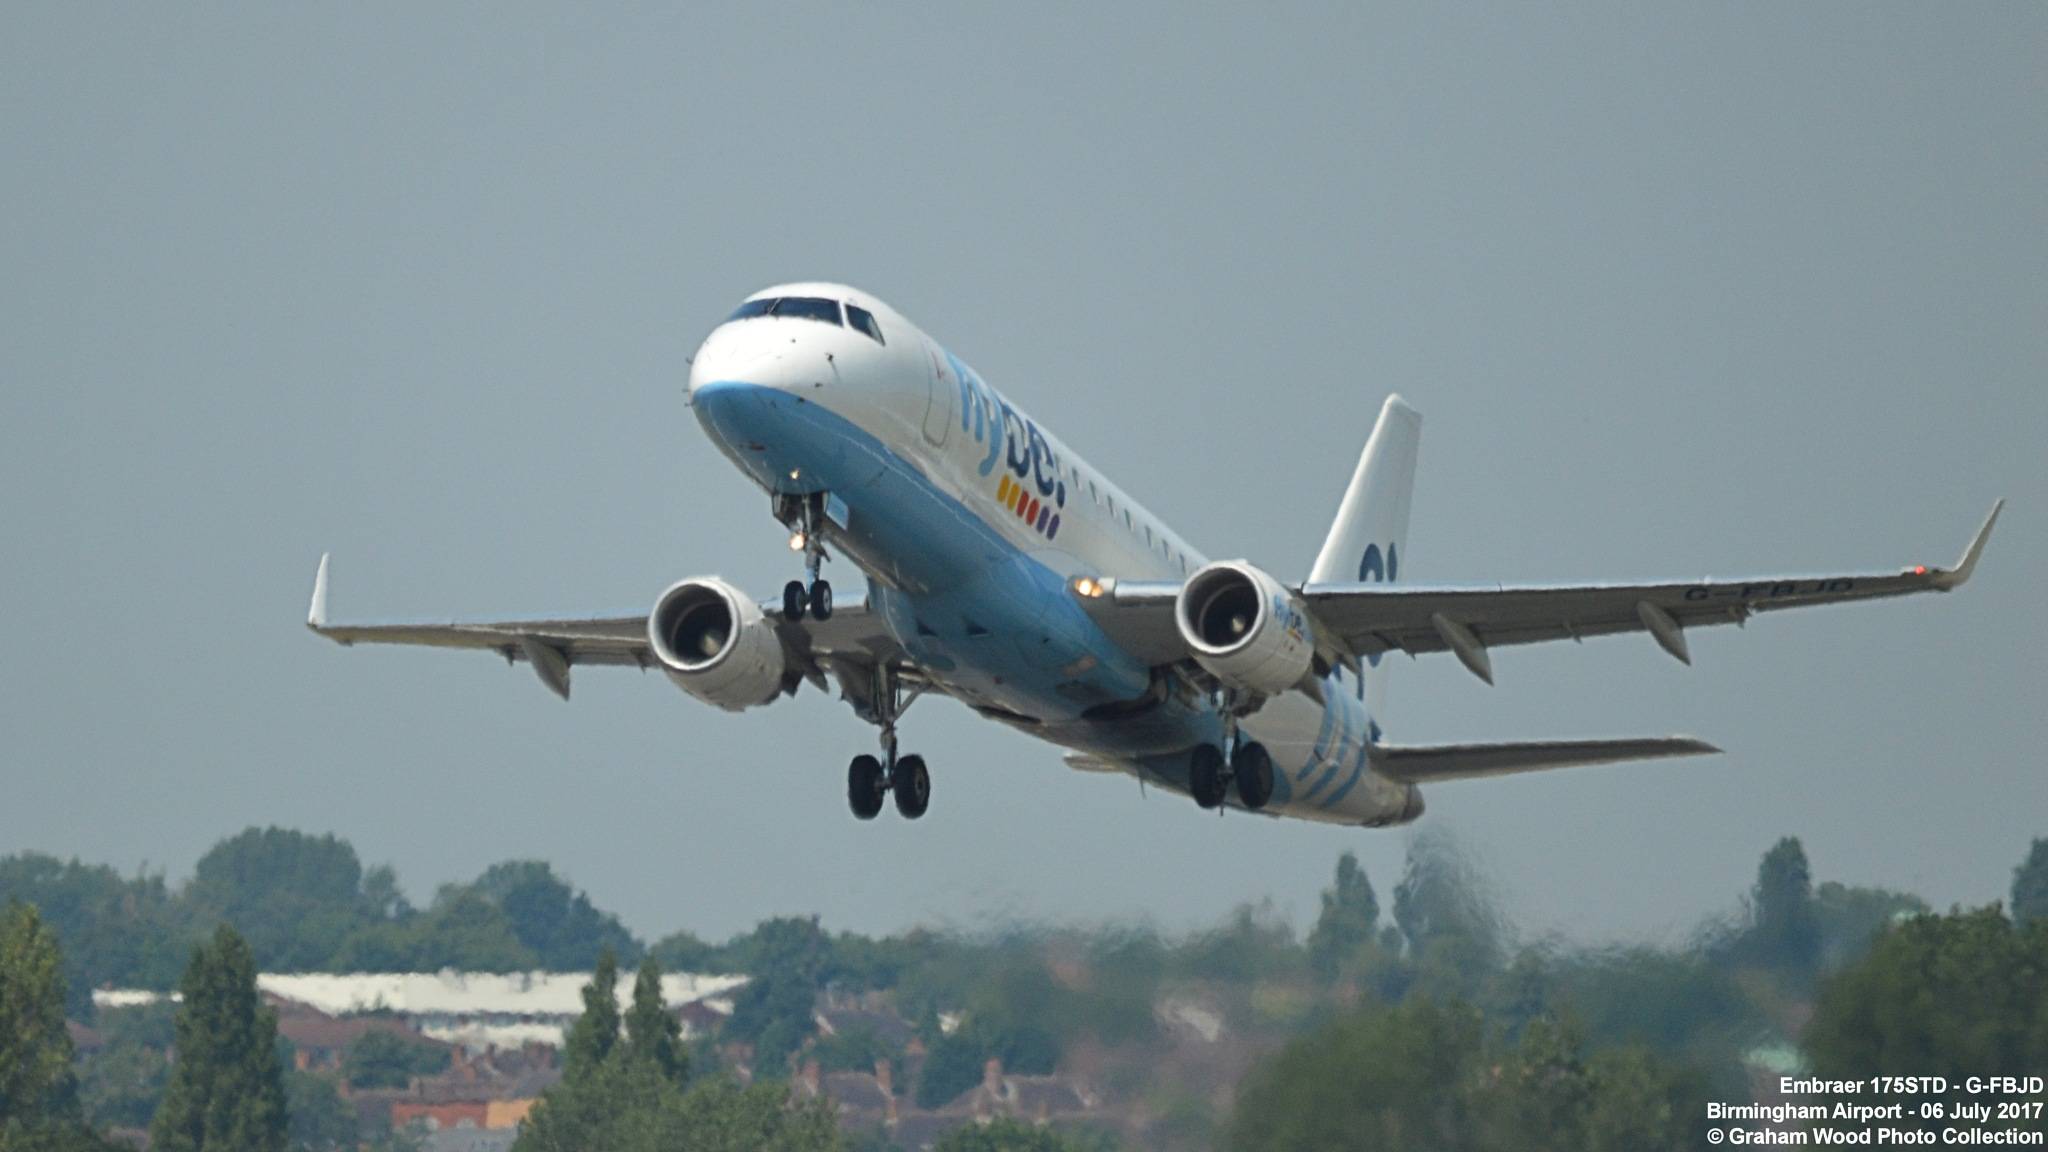 Embraer 175STD - G-FBJD by Graham Wood Photo Collection